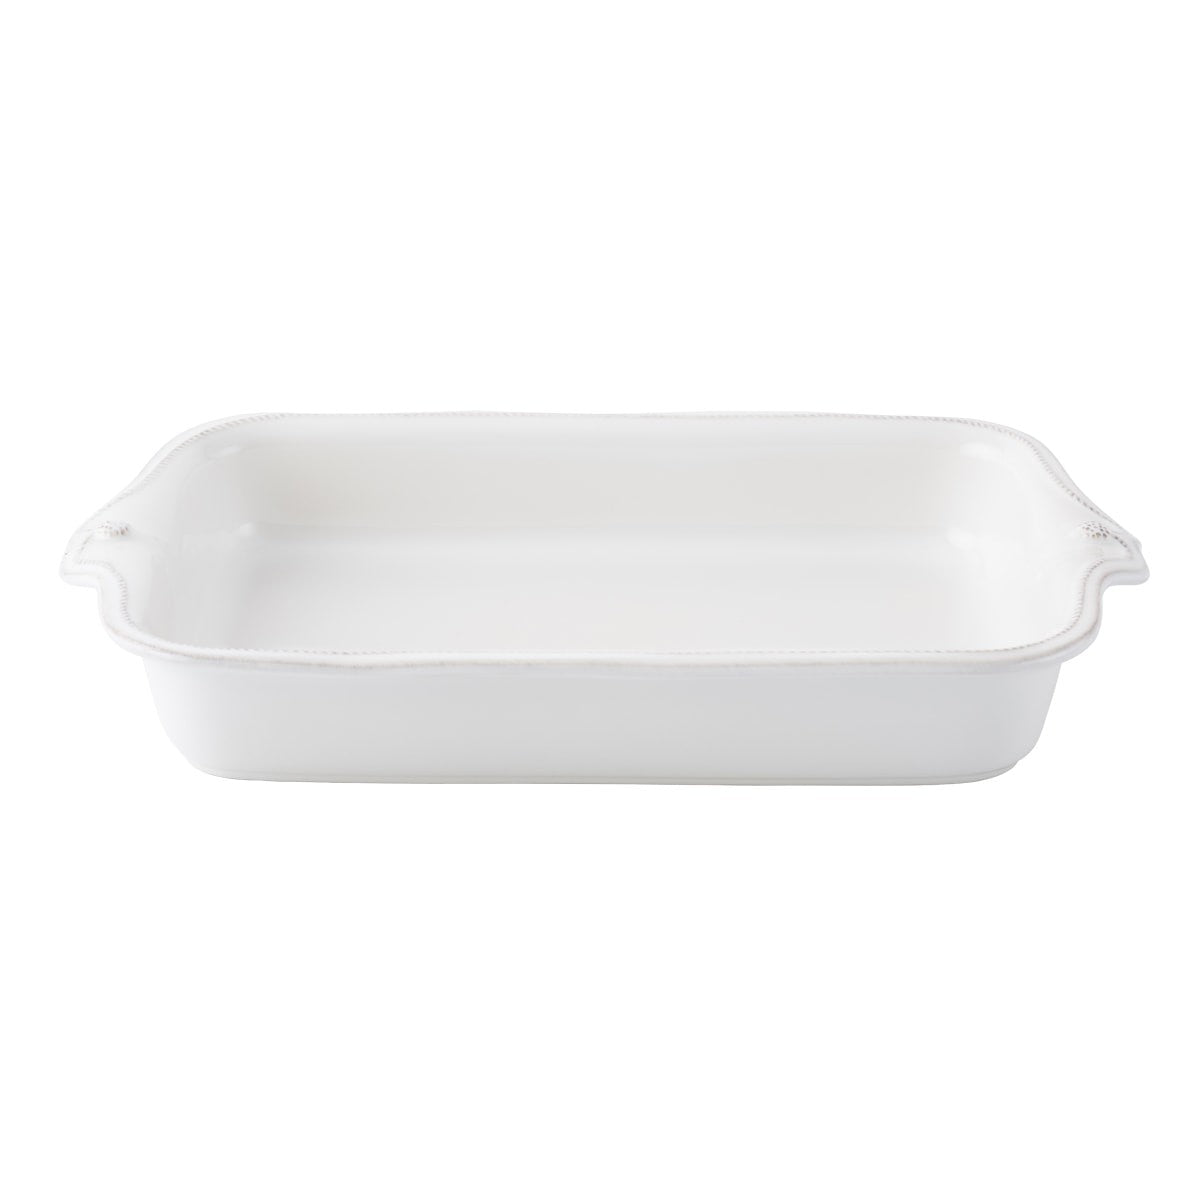 "Juliska - Rectangular Baker B&T White 16""L"